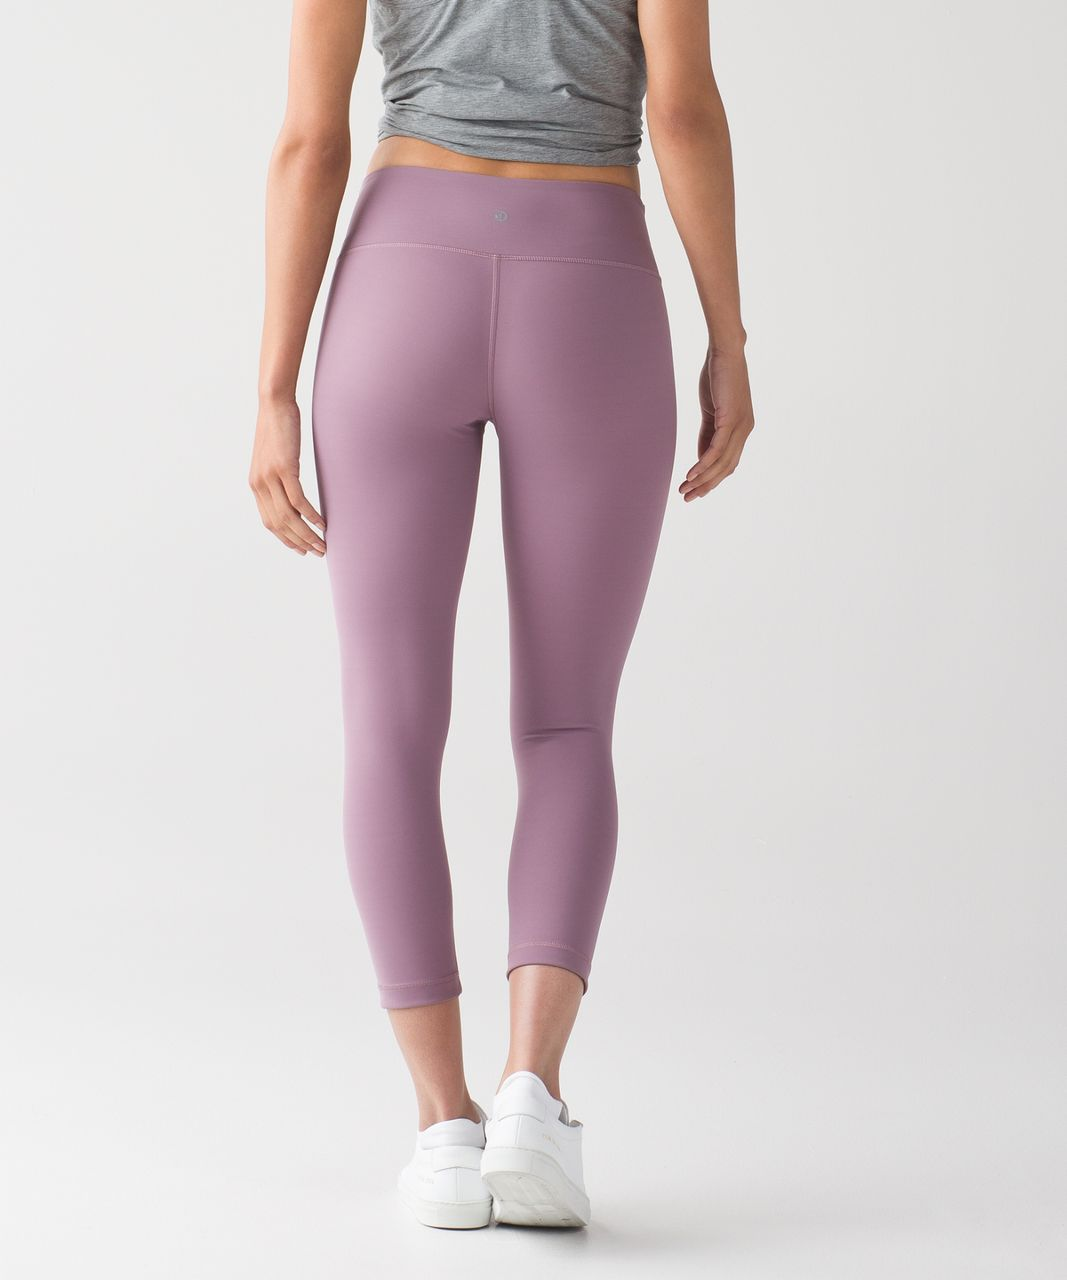 Lululemon Wunder Under Crop III - Dusty Mauve